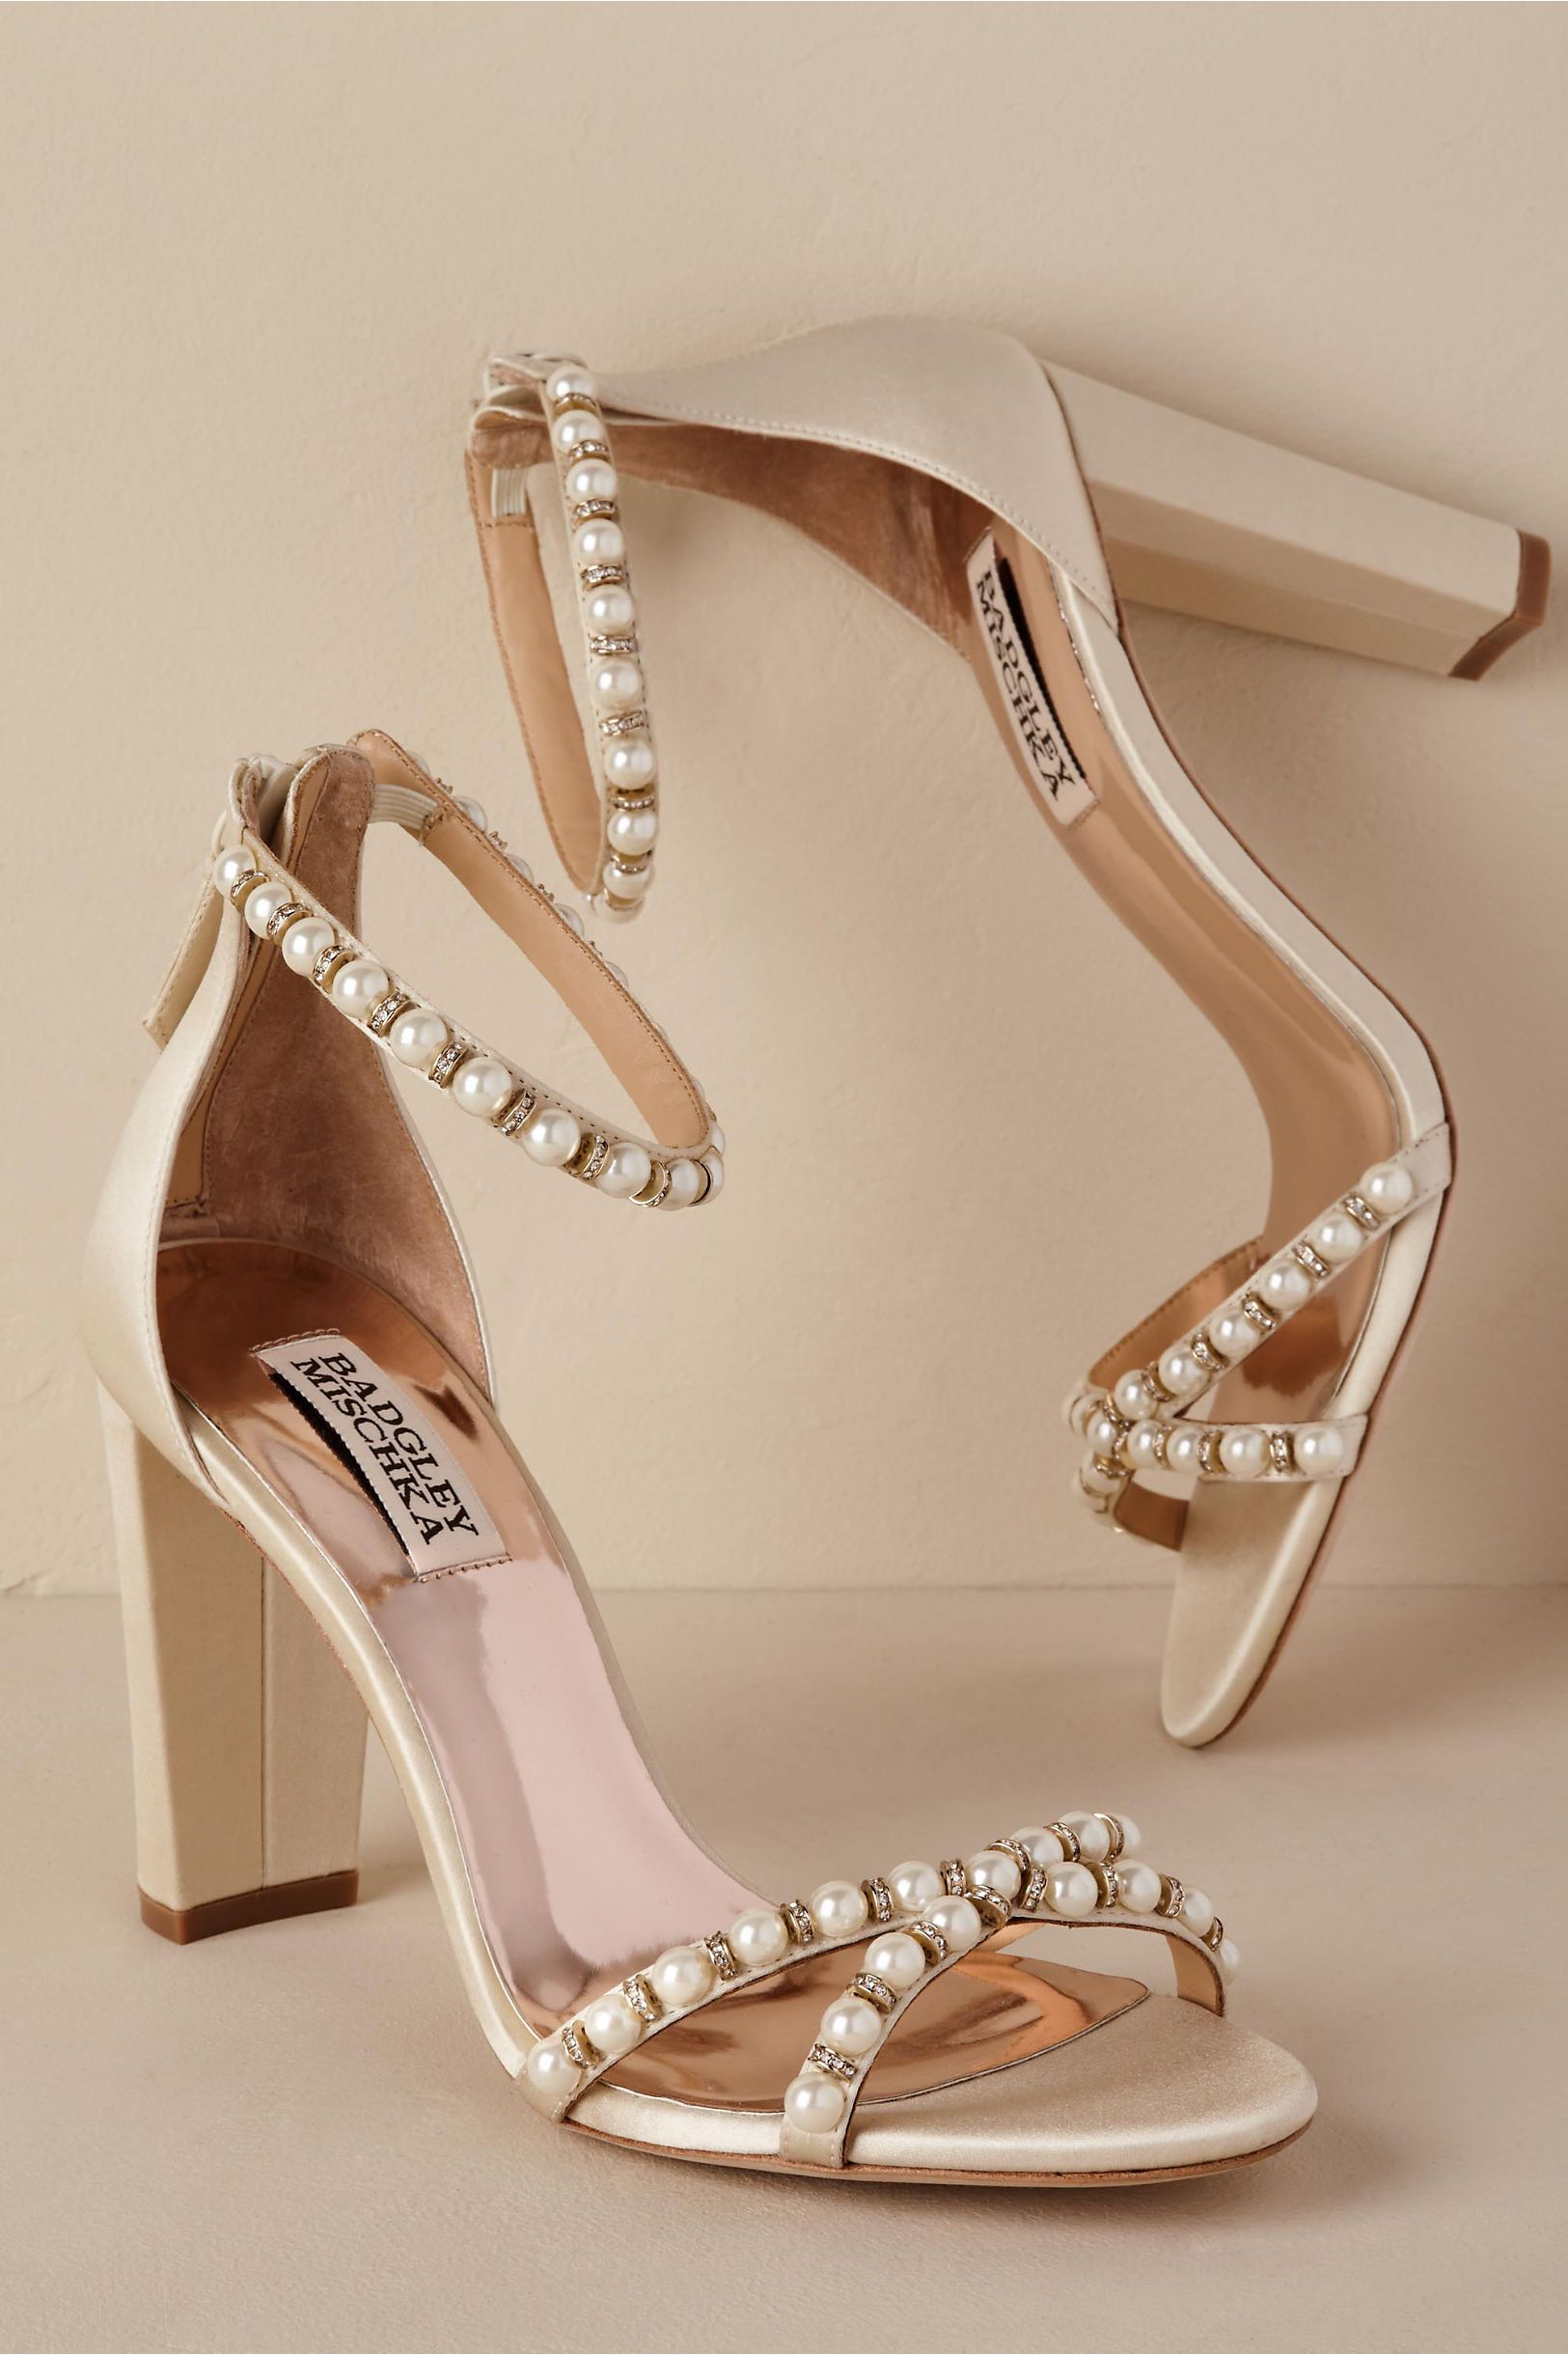 BHLDN Pearl Block Heel Ivory in Shoes & Accessories